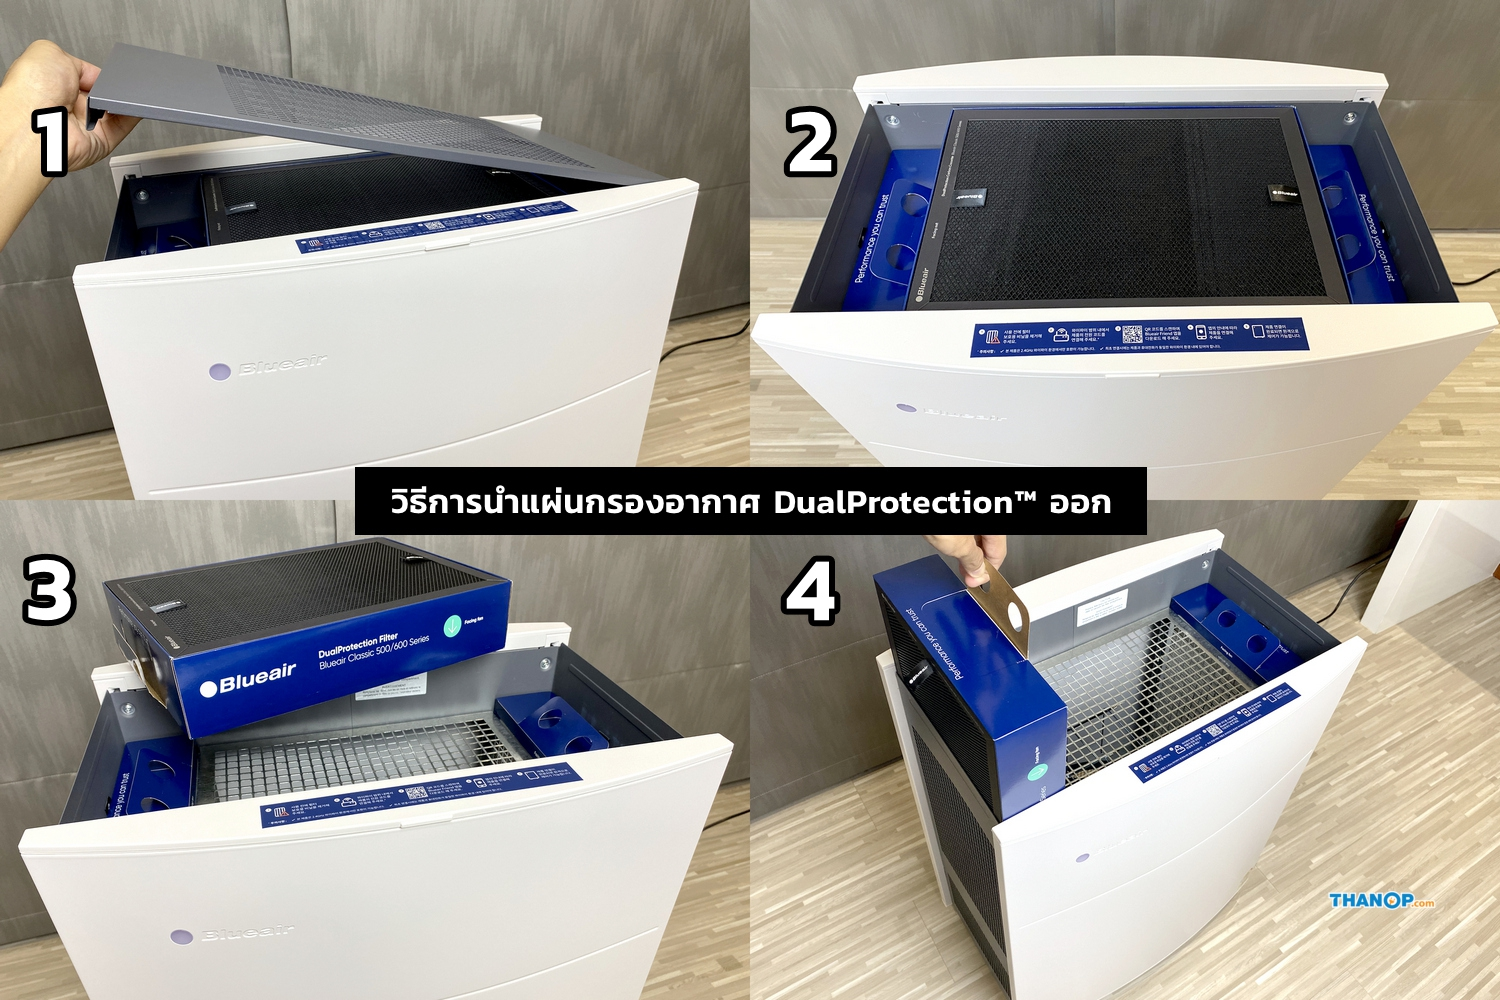 Blueair Classic 690i DualProtection™ Filter Removal